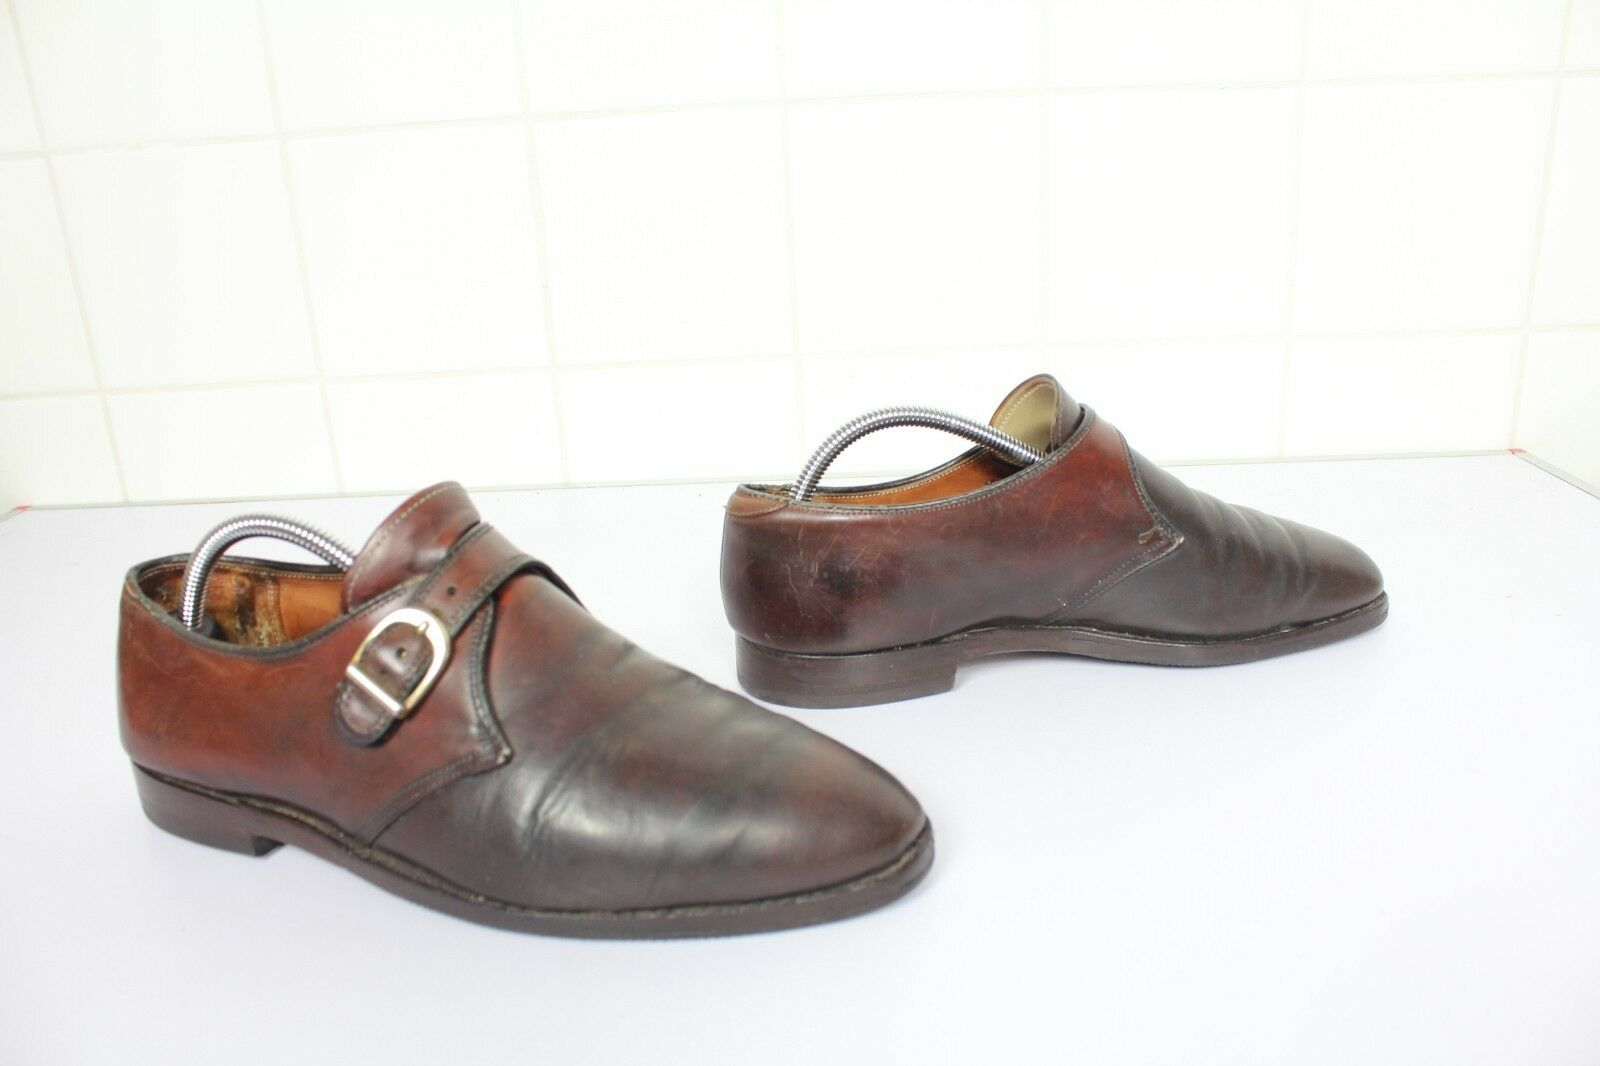 Alden Luxus Handmade Monk Herrenschuhe voll Echtleder Eu 42-Us 8 C made in USA